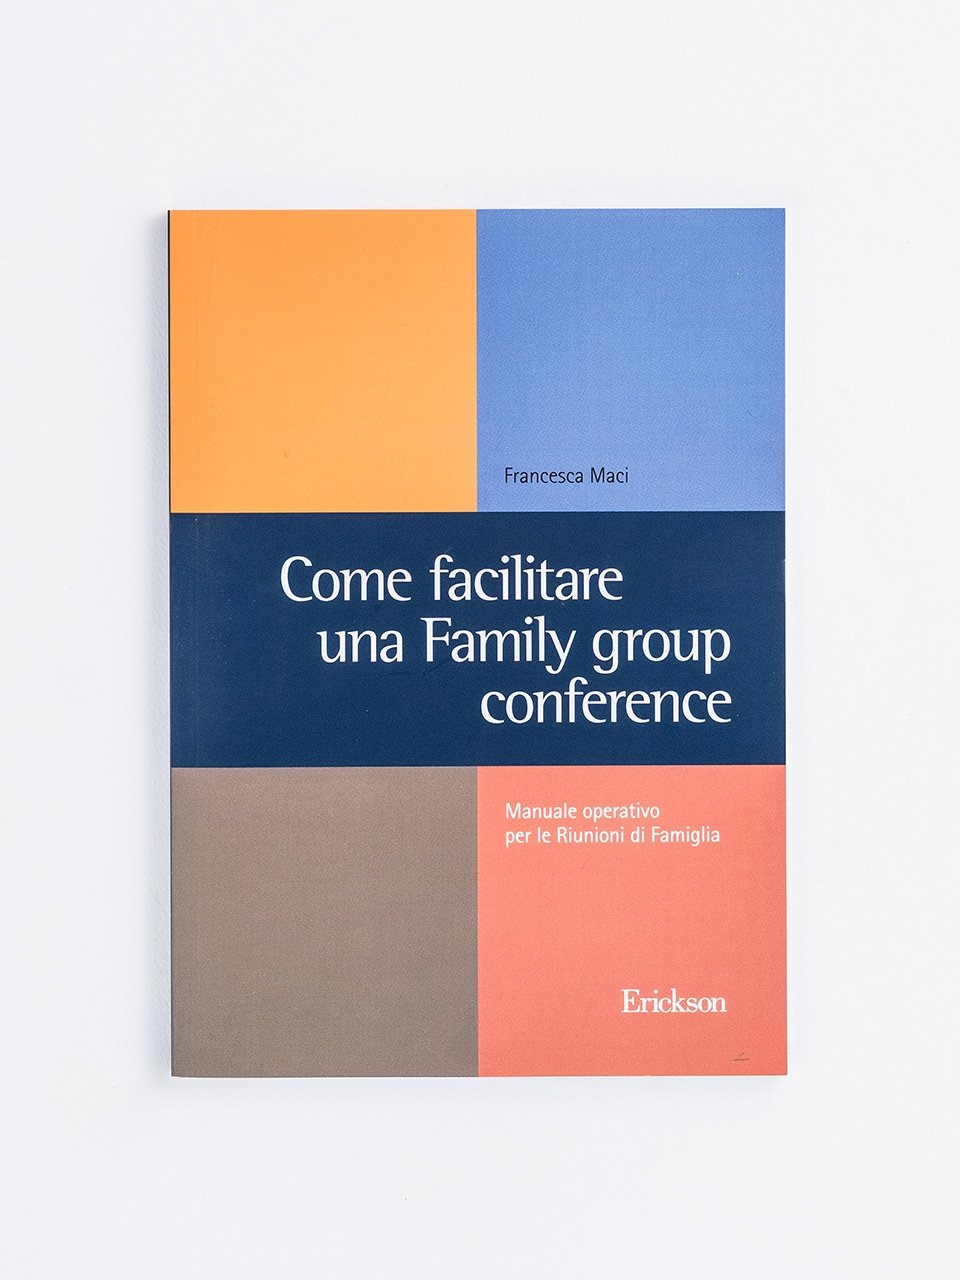 Come facilitare una Family group conference - Nuovi dettati - Classi quarta e quinta - Libri - Erickson